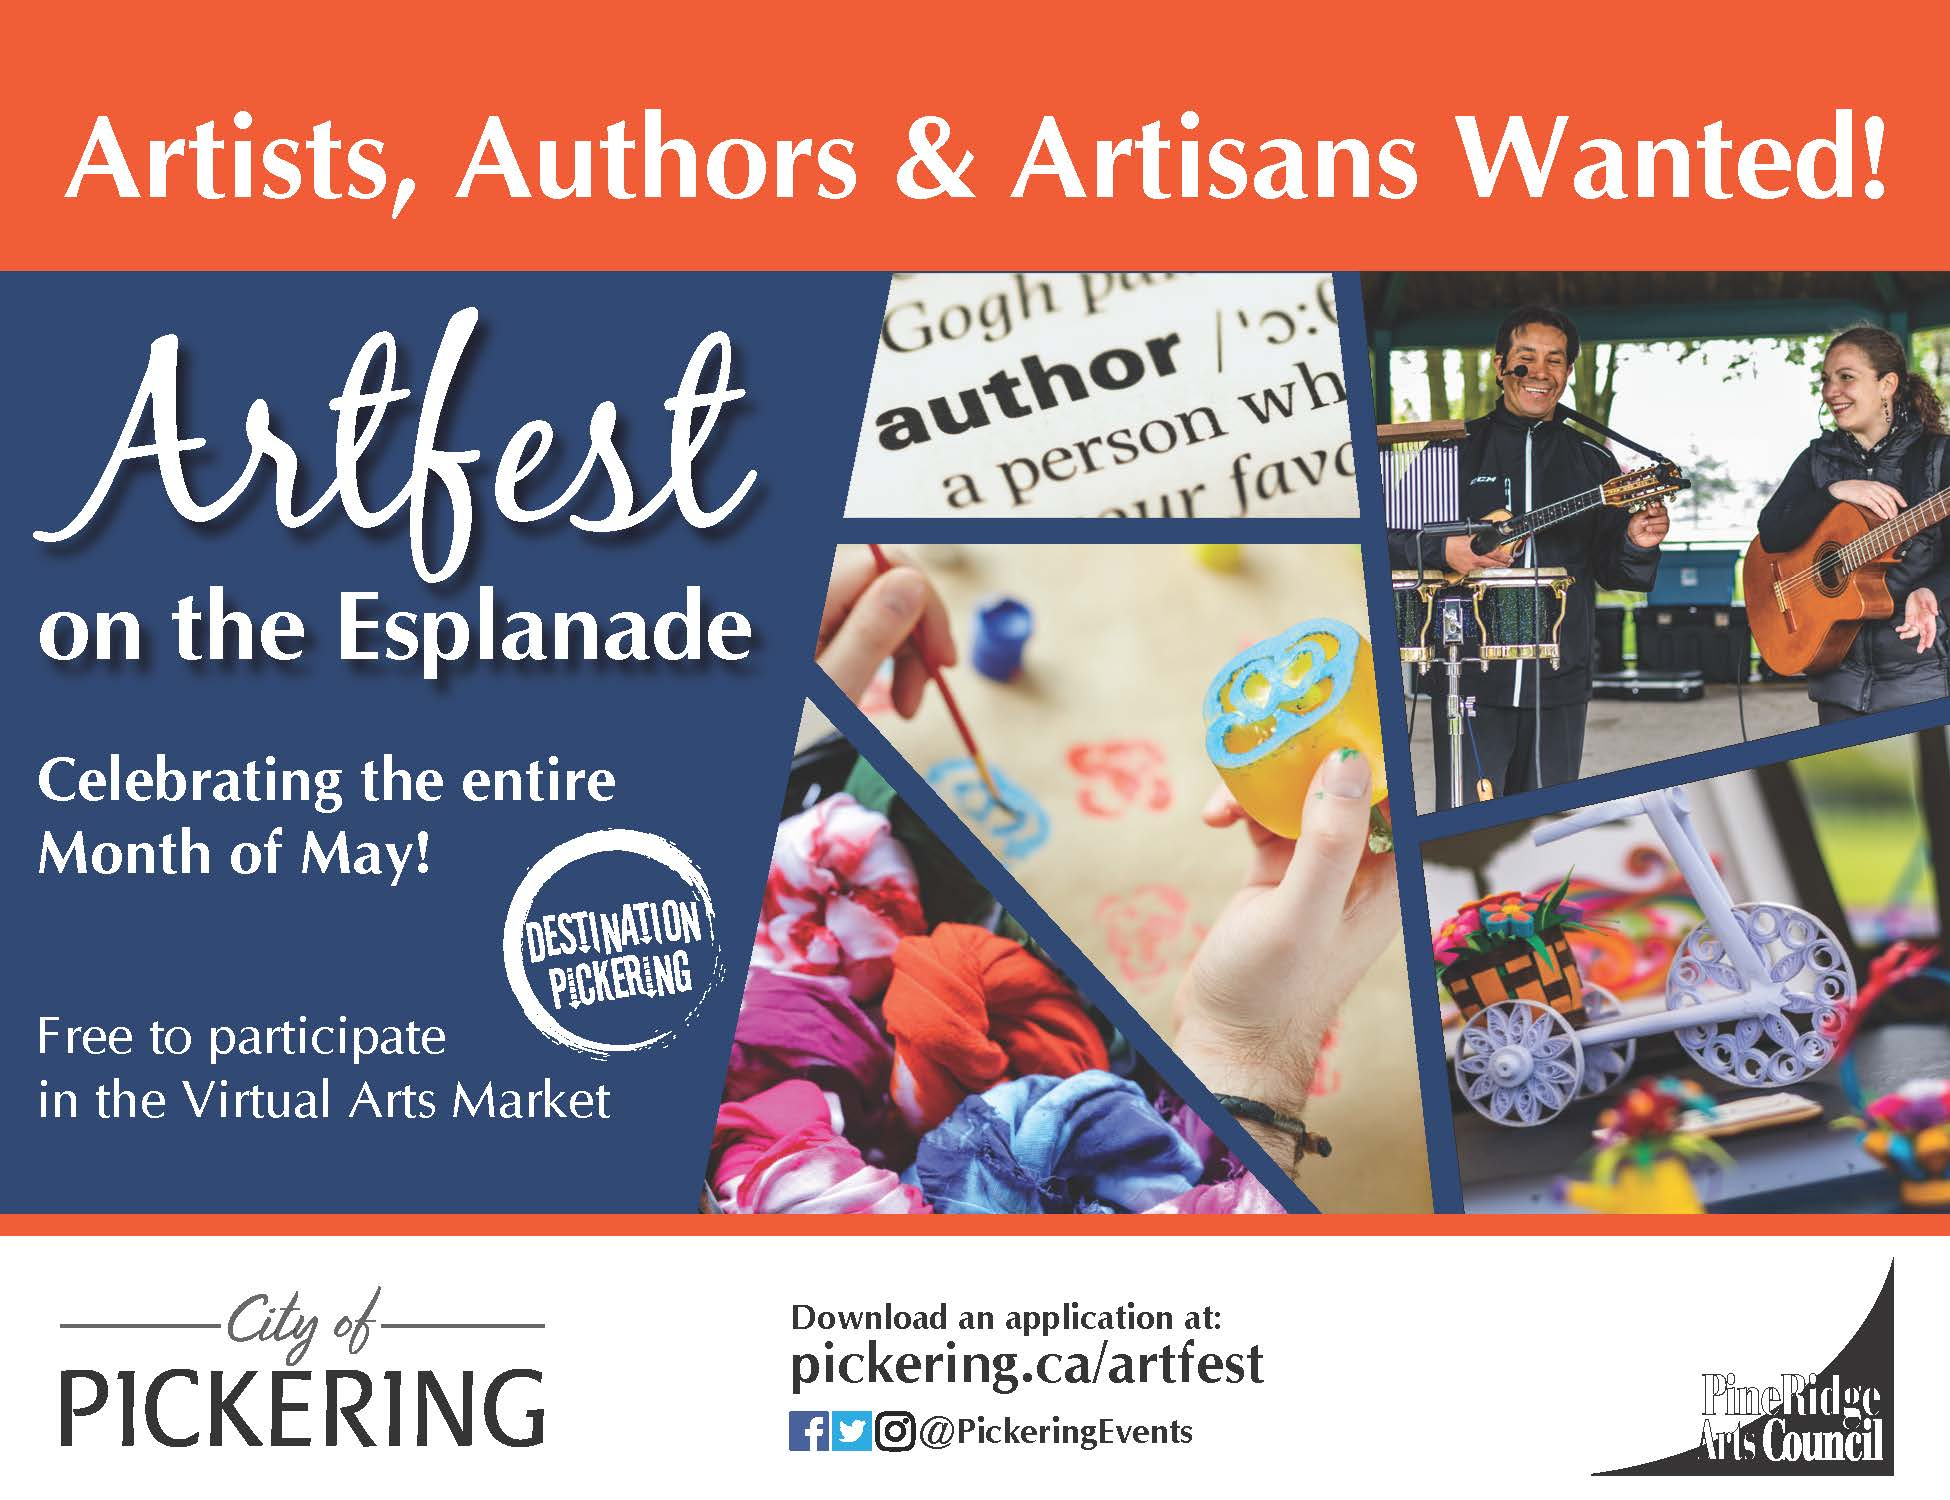 artfest call for artists, authors, artisans and performers